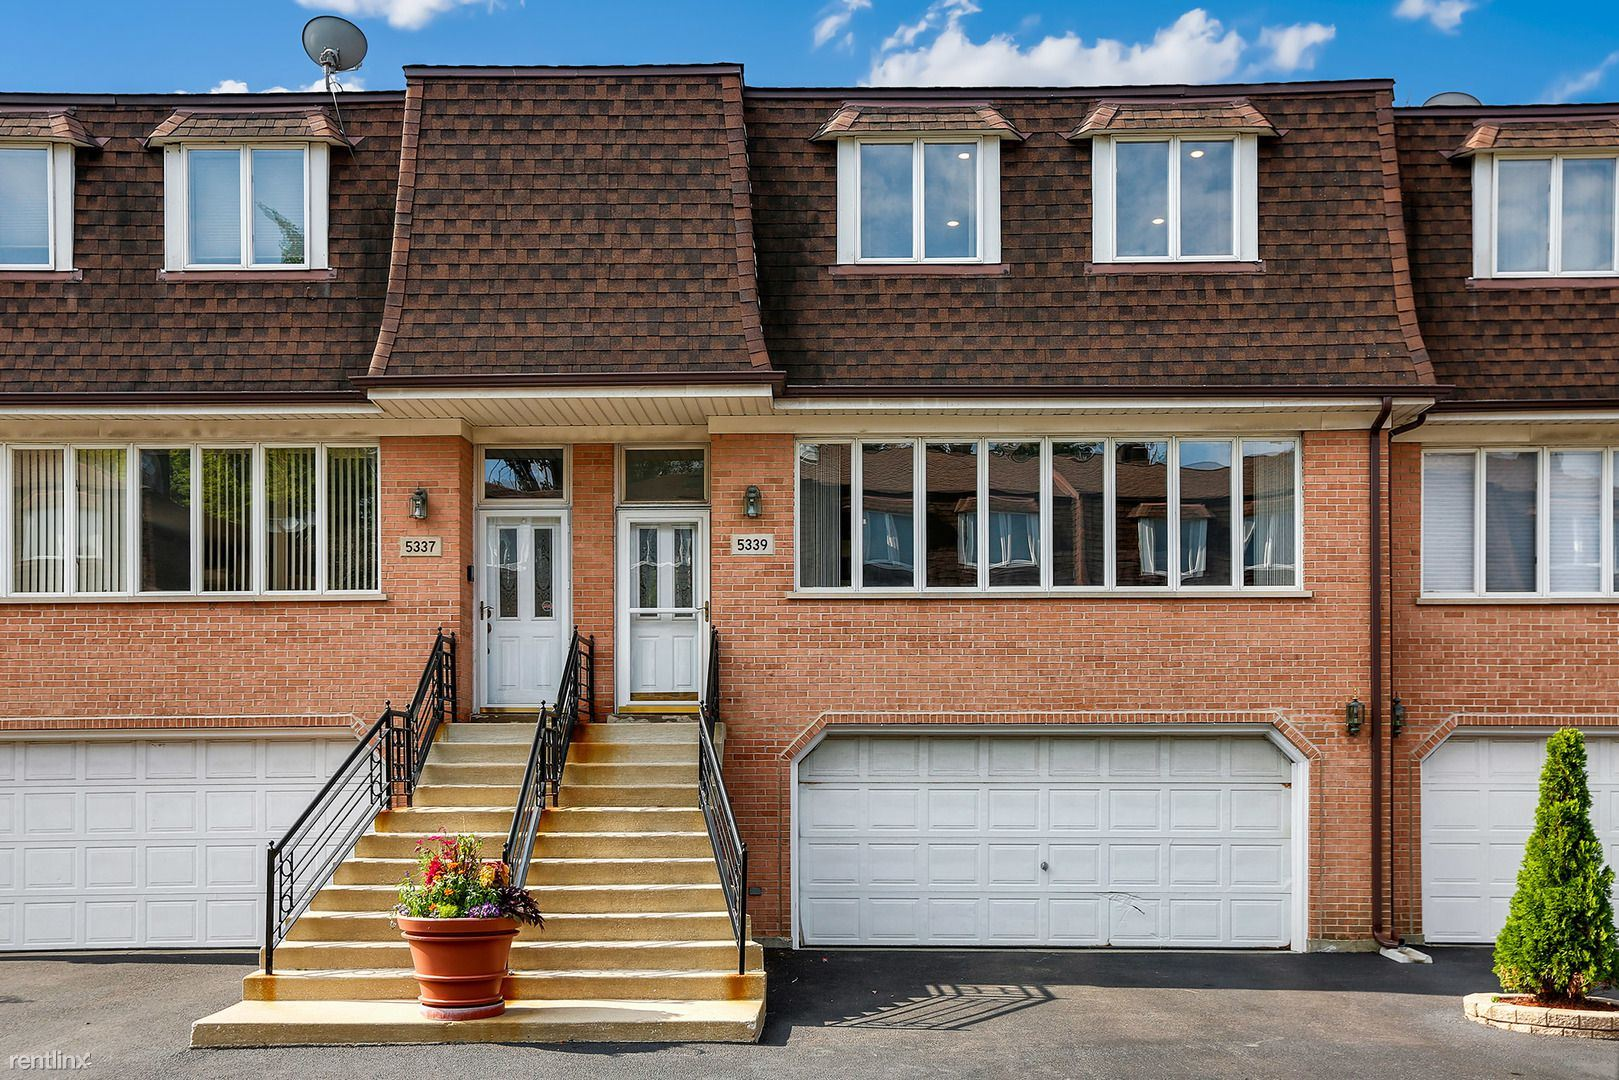 Townhouse for Rent in Skokie